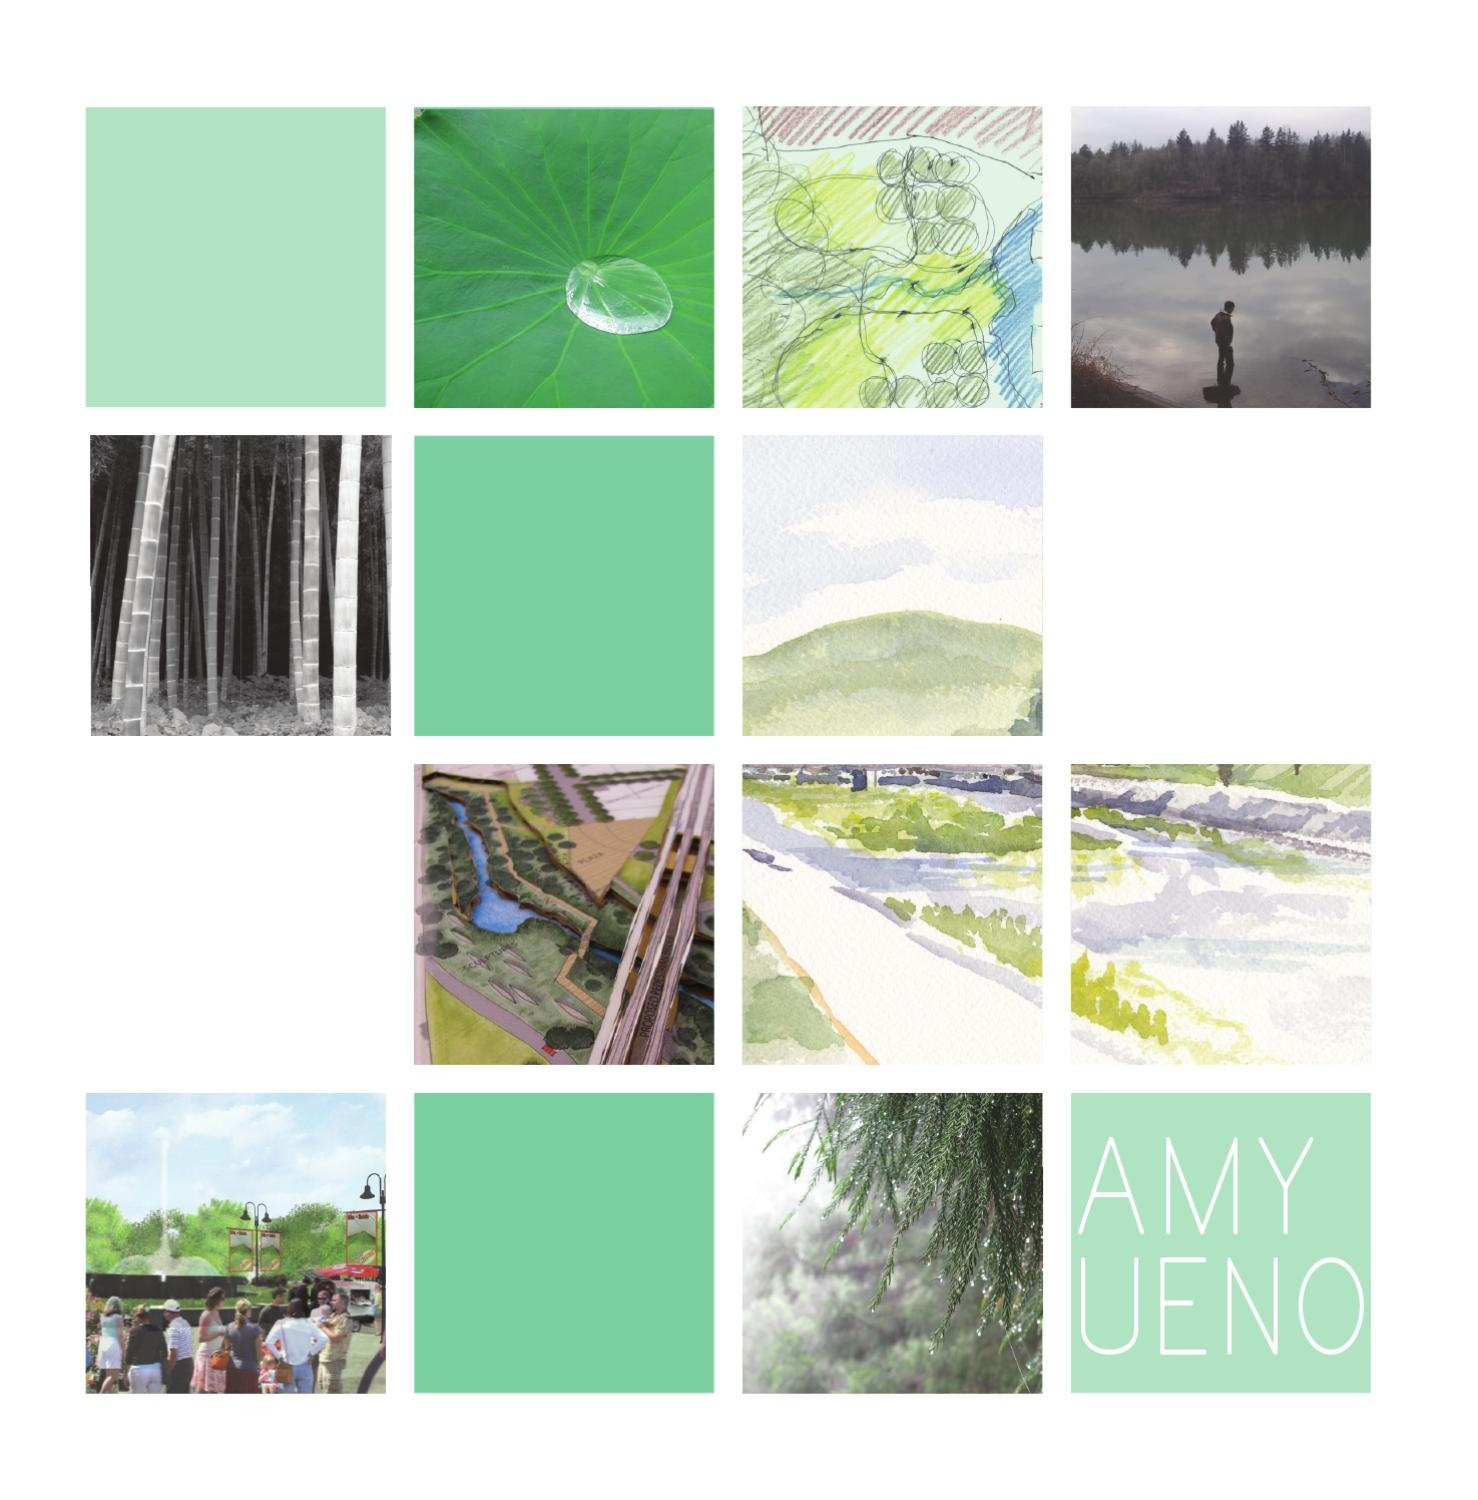 Landscape architecture portfolio by amy ueno for Architecture inde